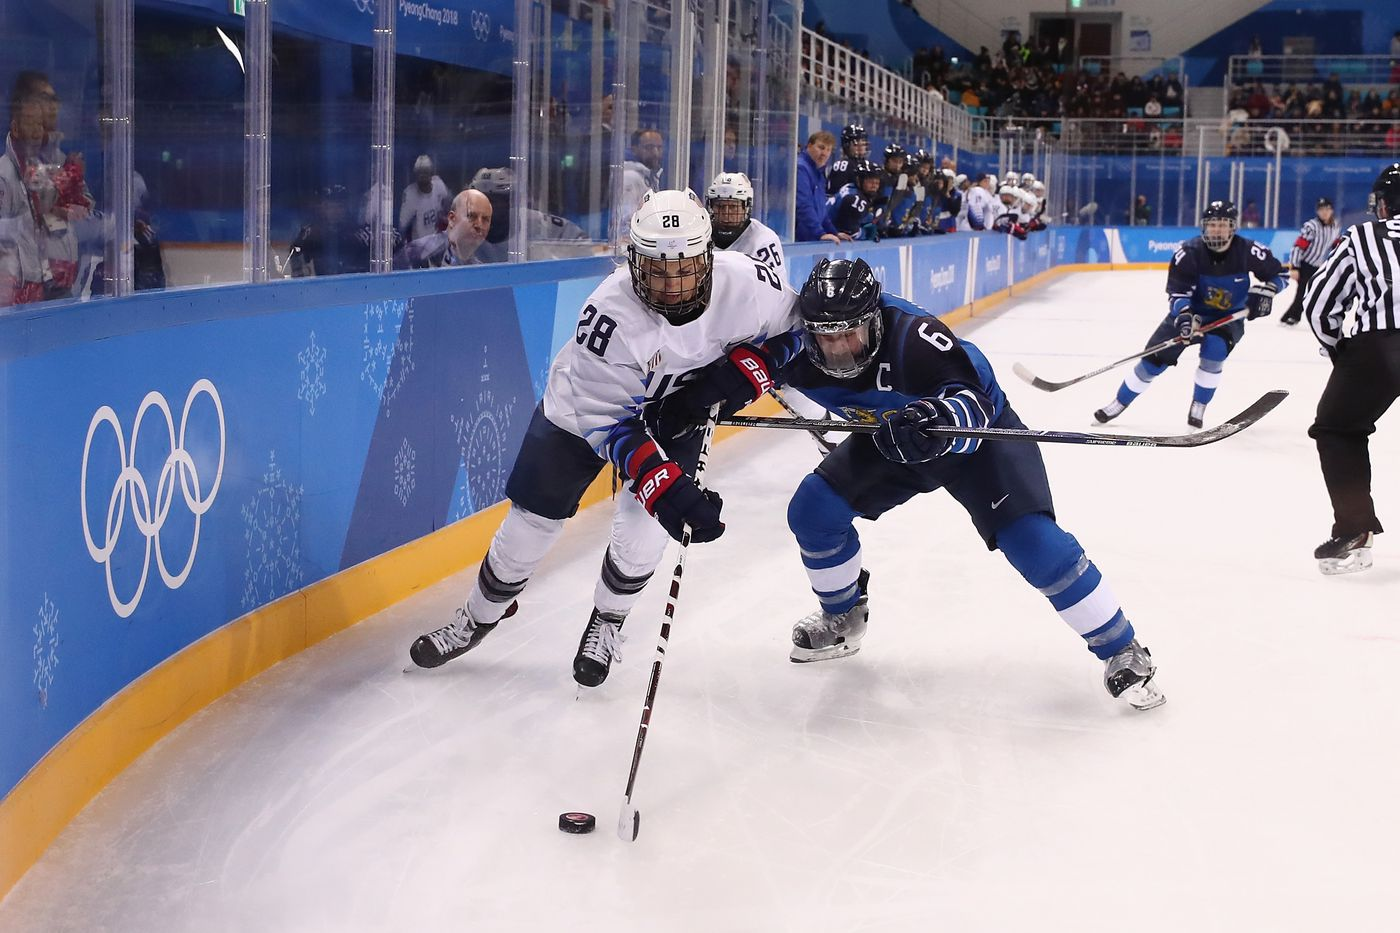 Finland Foiled By Shootout At Women S Worlds Championship 2019 Us